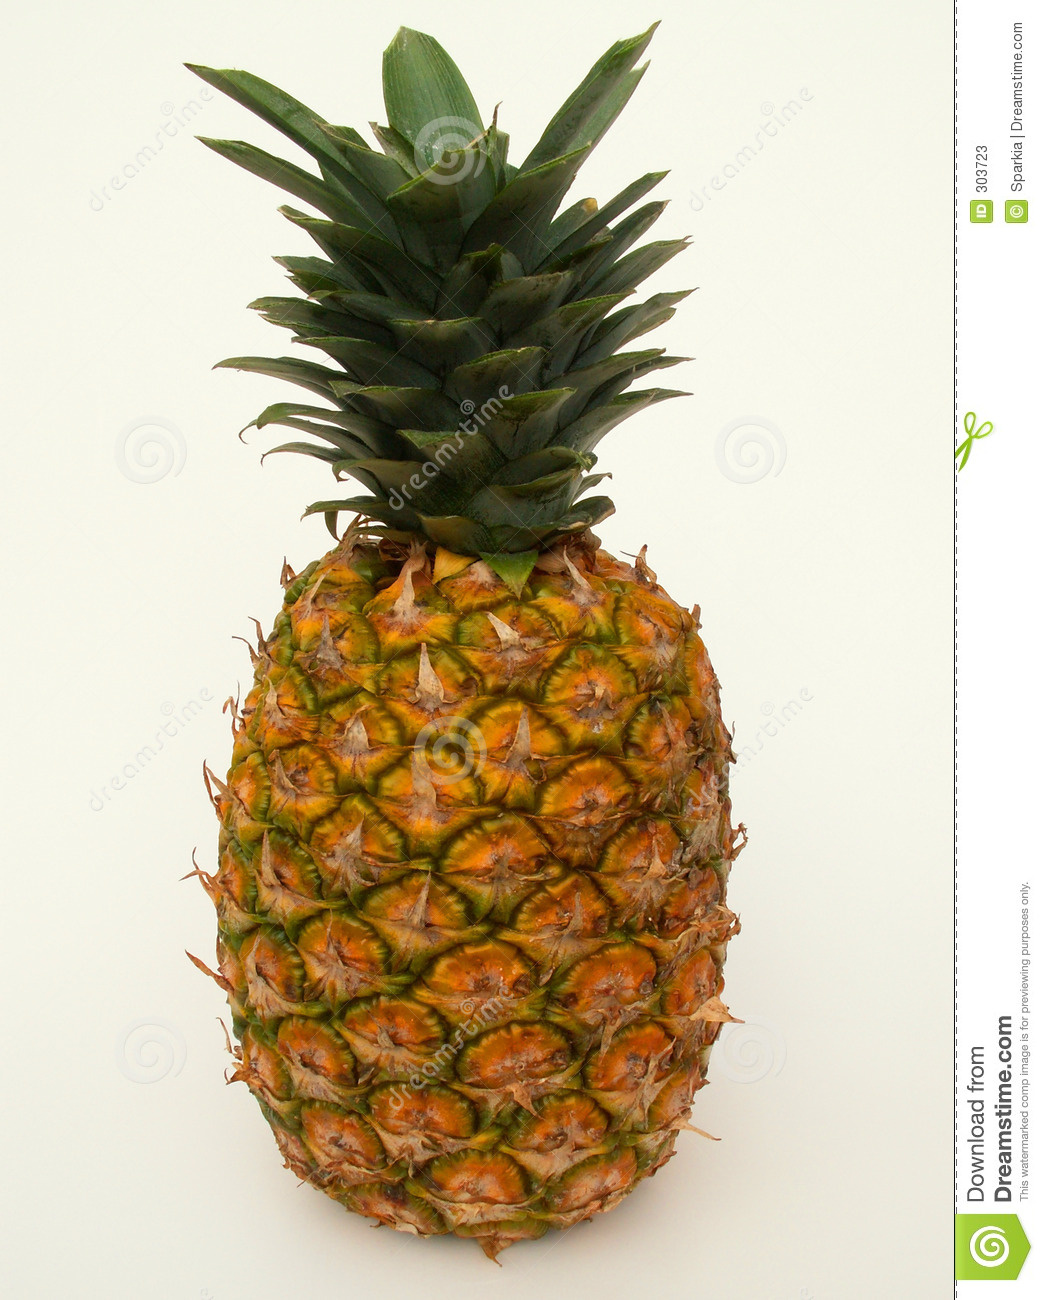 pineapple stock image image of healthy rich acidic